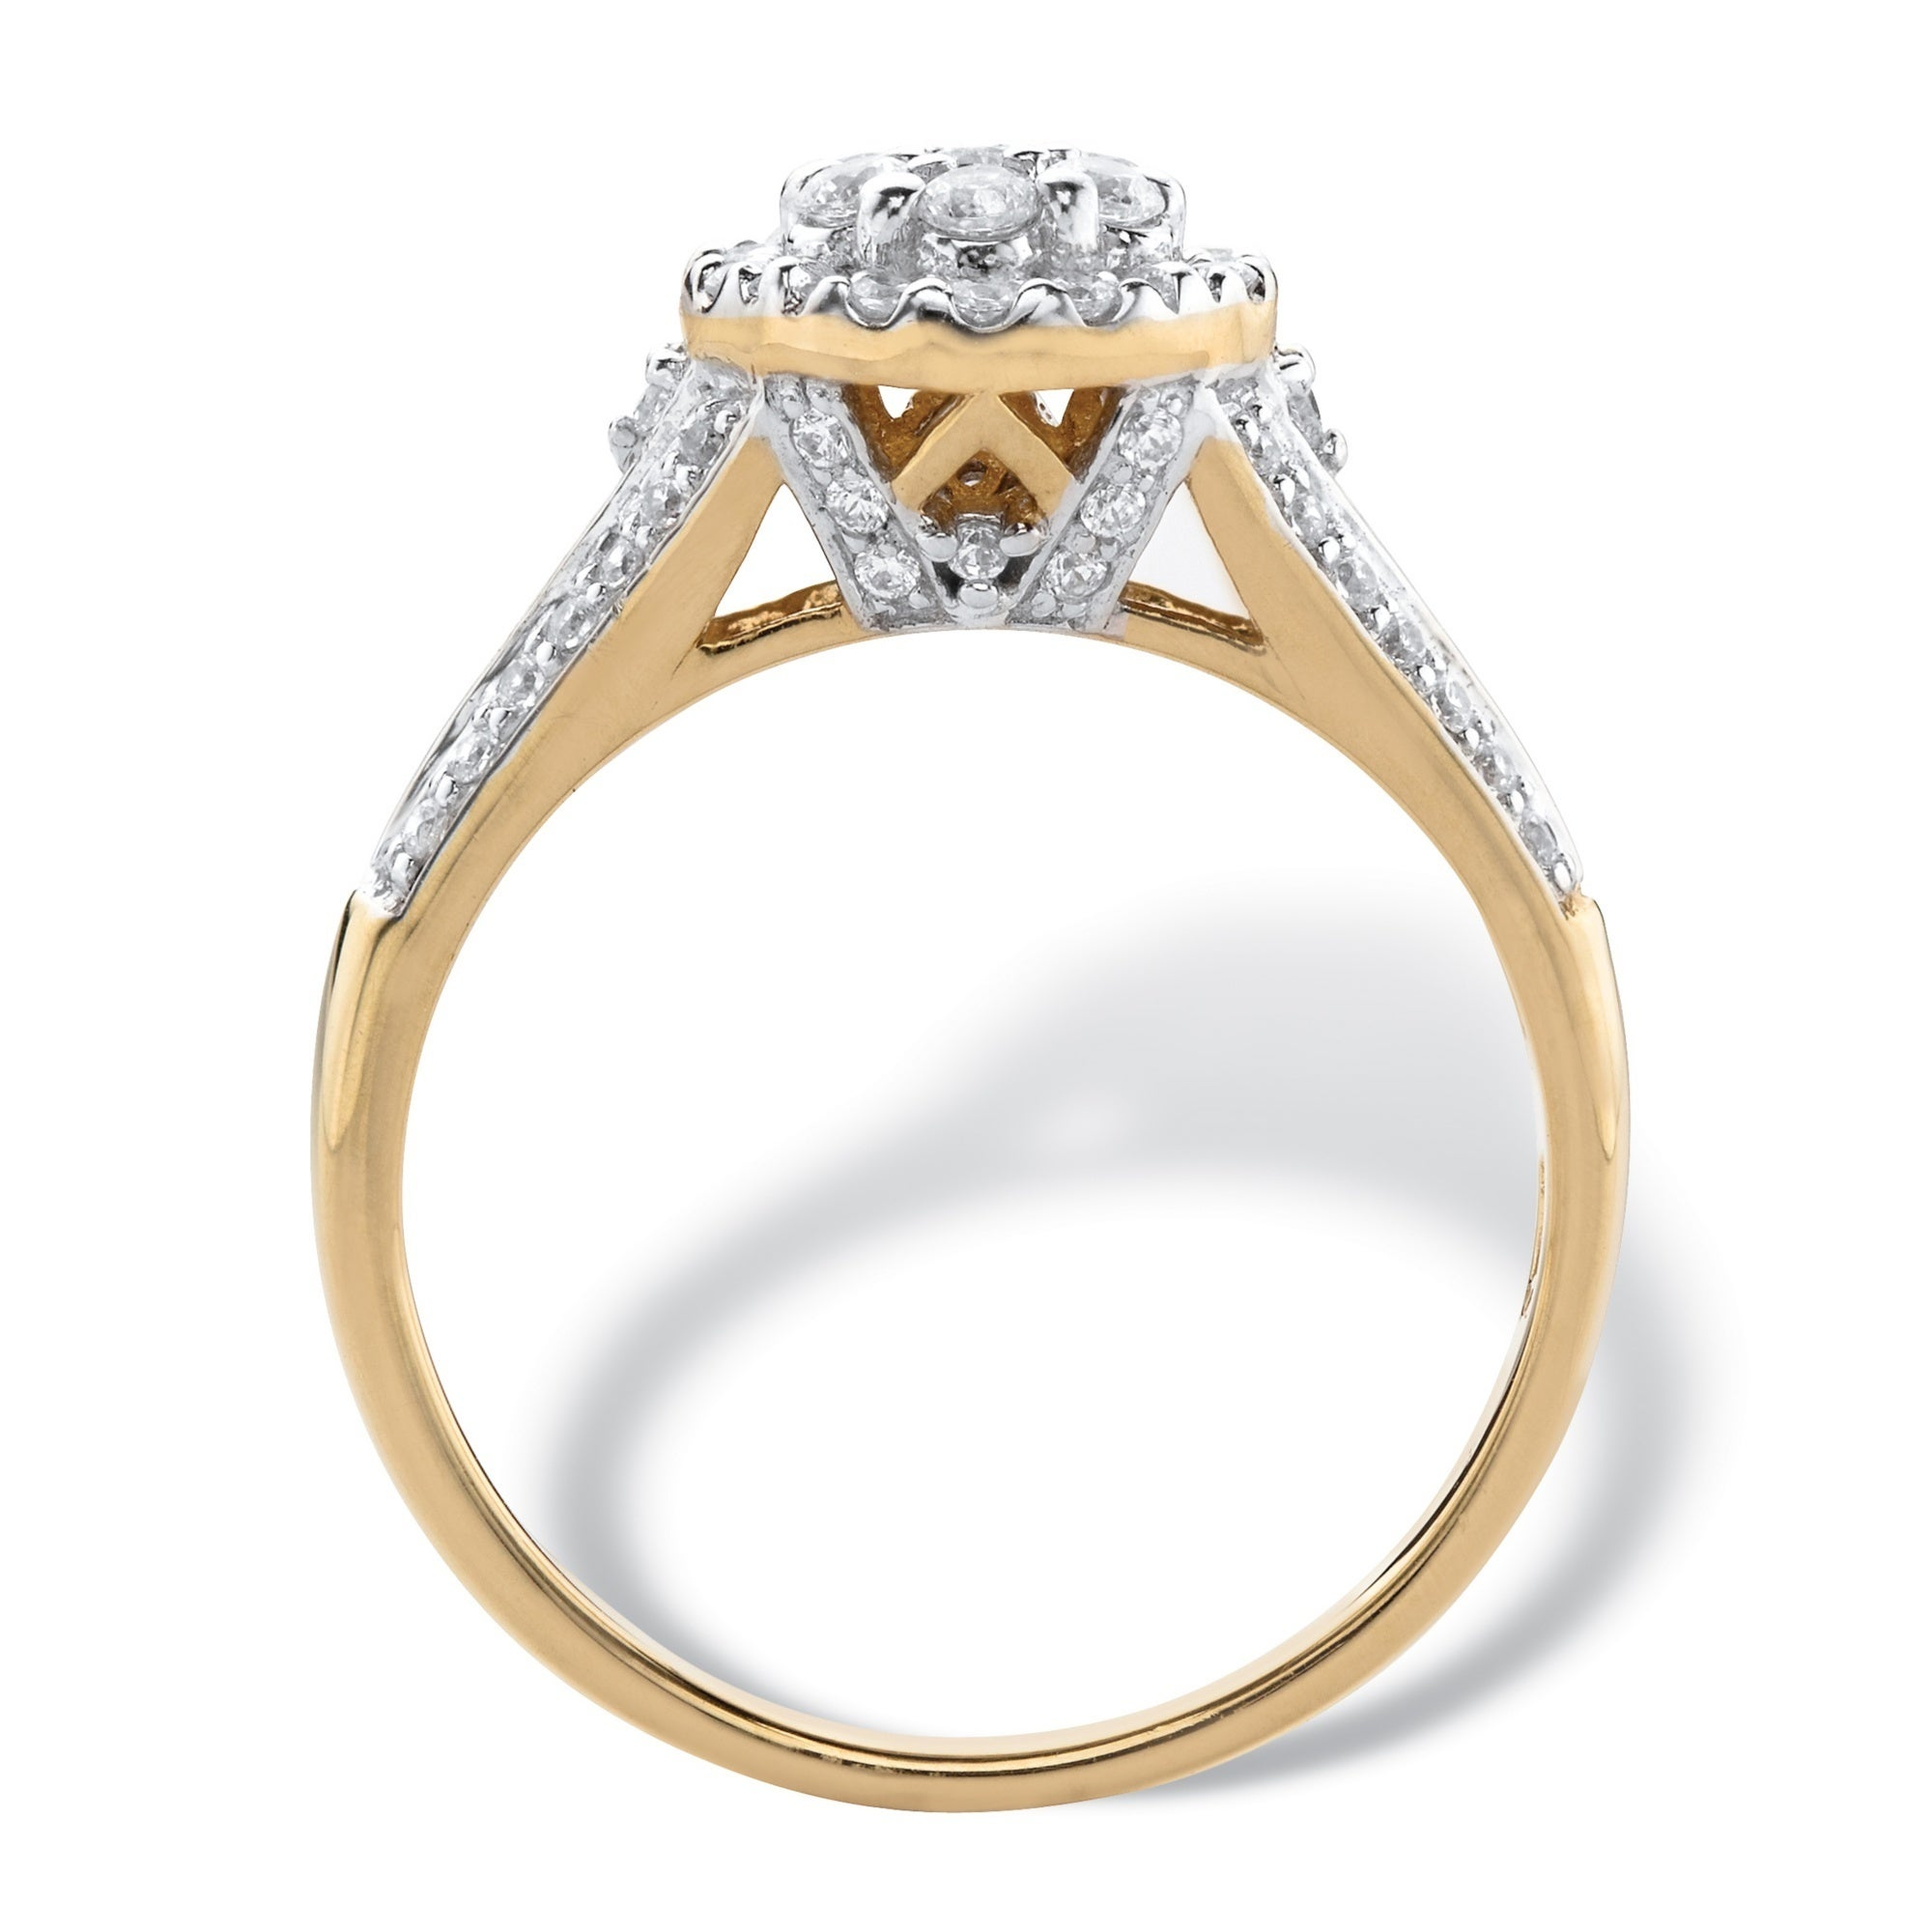 crest s available personalized engagement cz ring panel com rings and class white women yellow gold keepsake valadium walmart in ip side silver plus